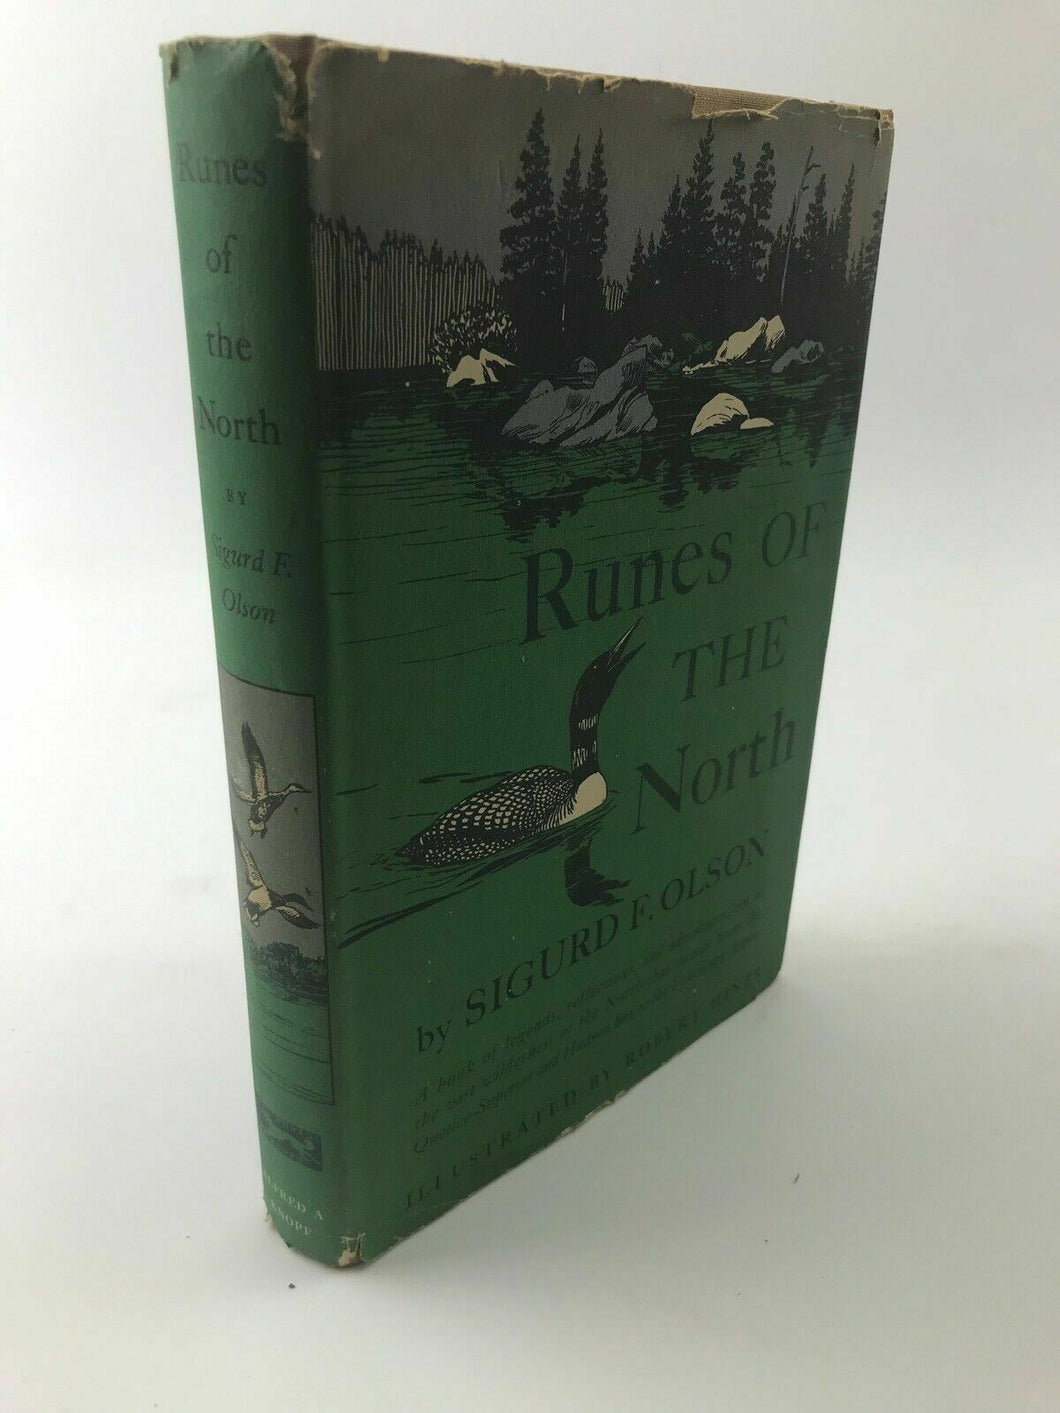 Runes of the North by Sigurd F. Olson First Edition with Dust Jacket - LOT 3243